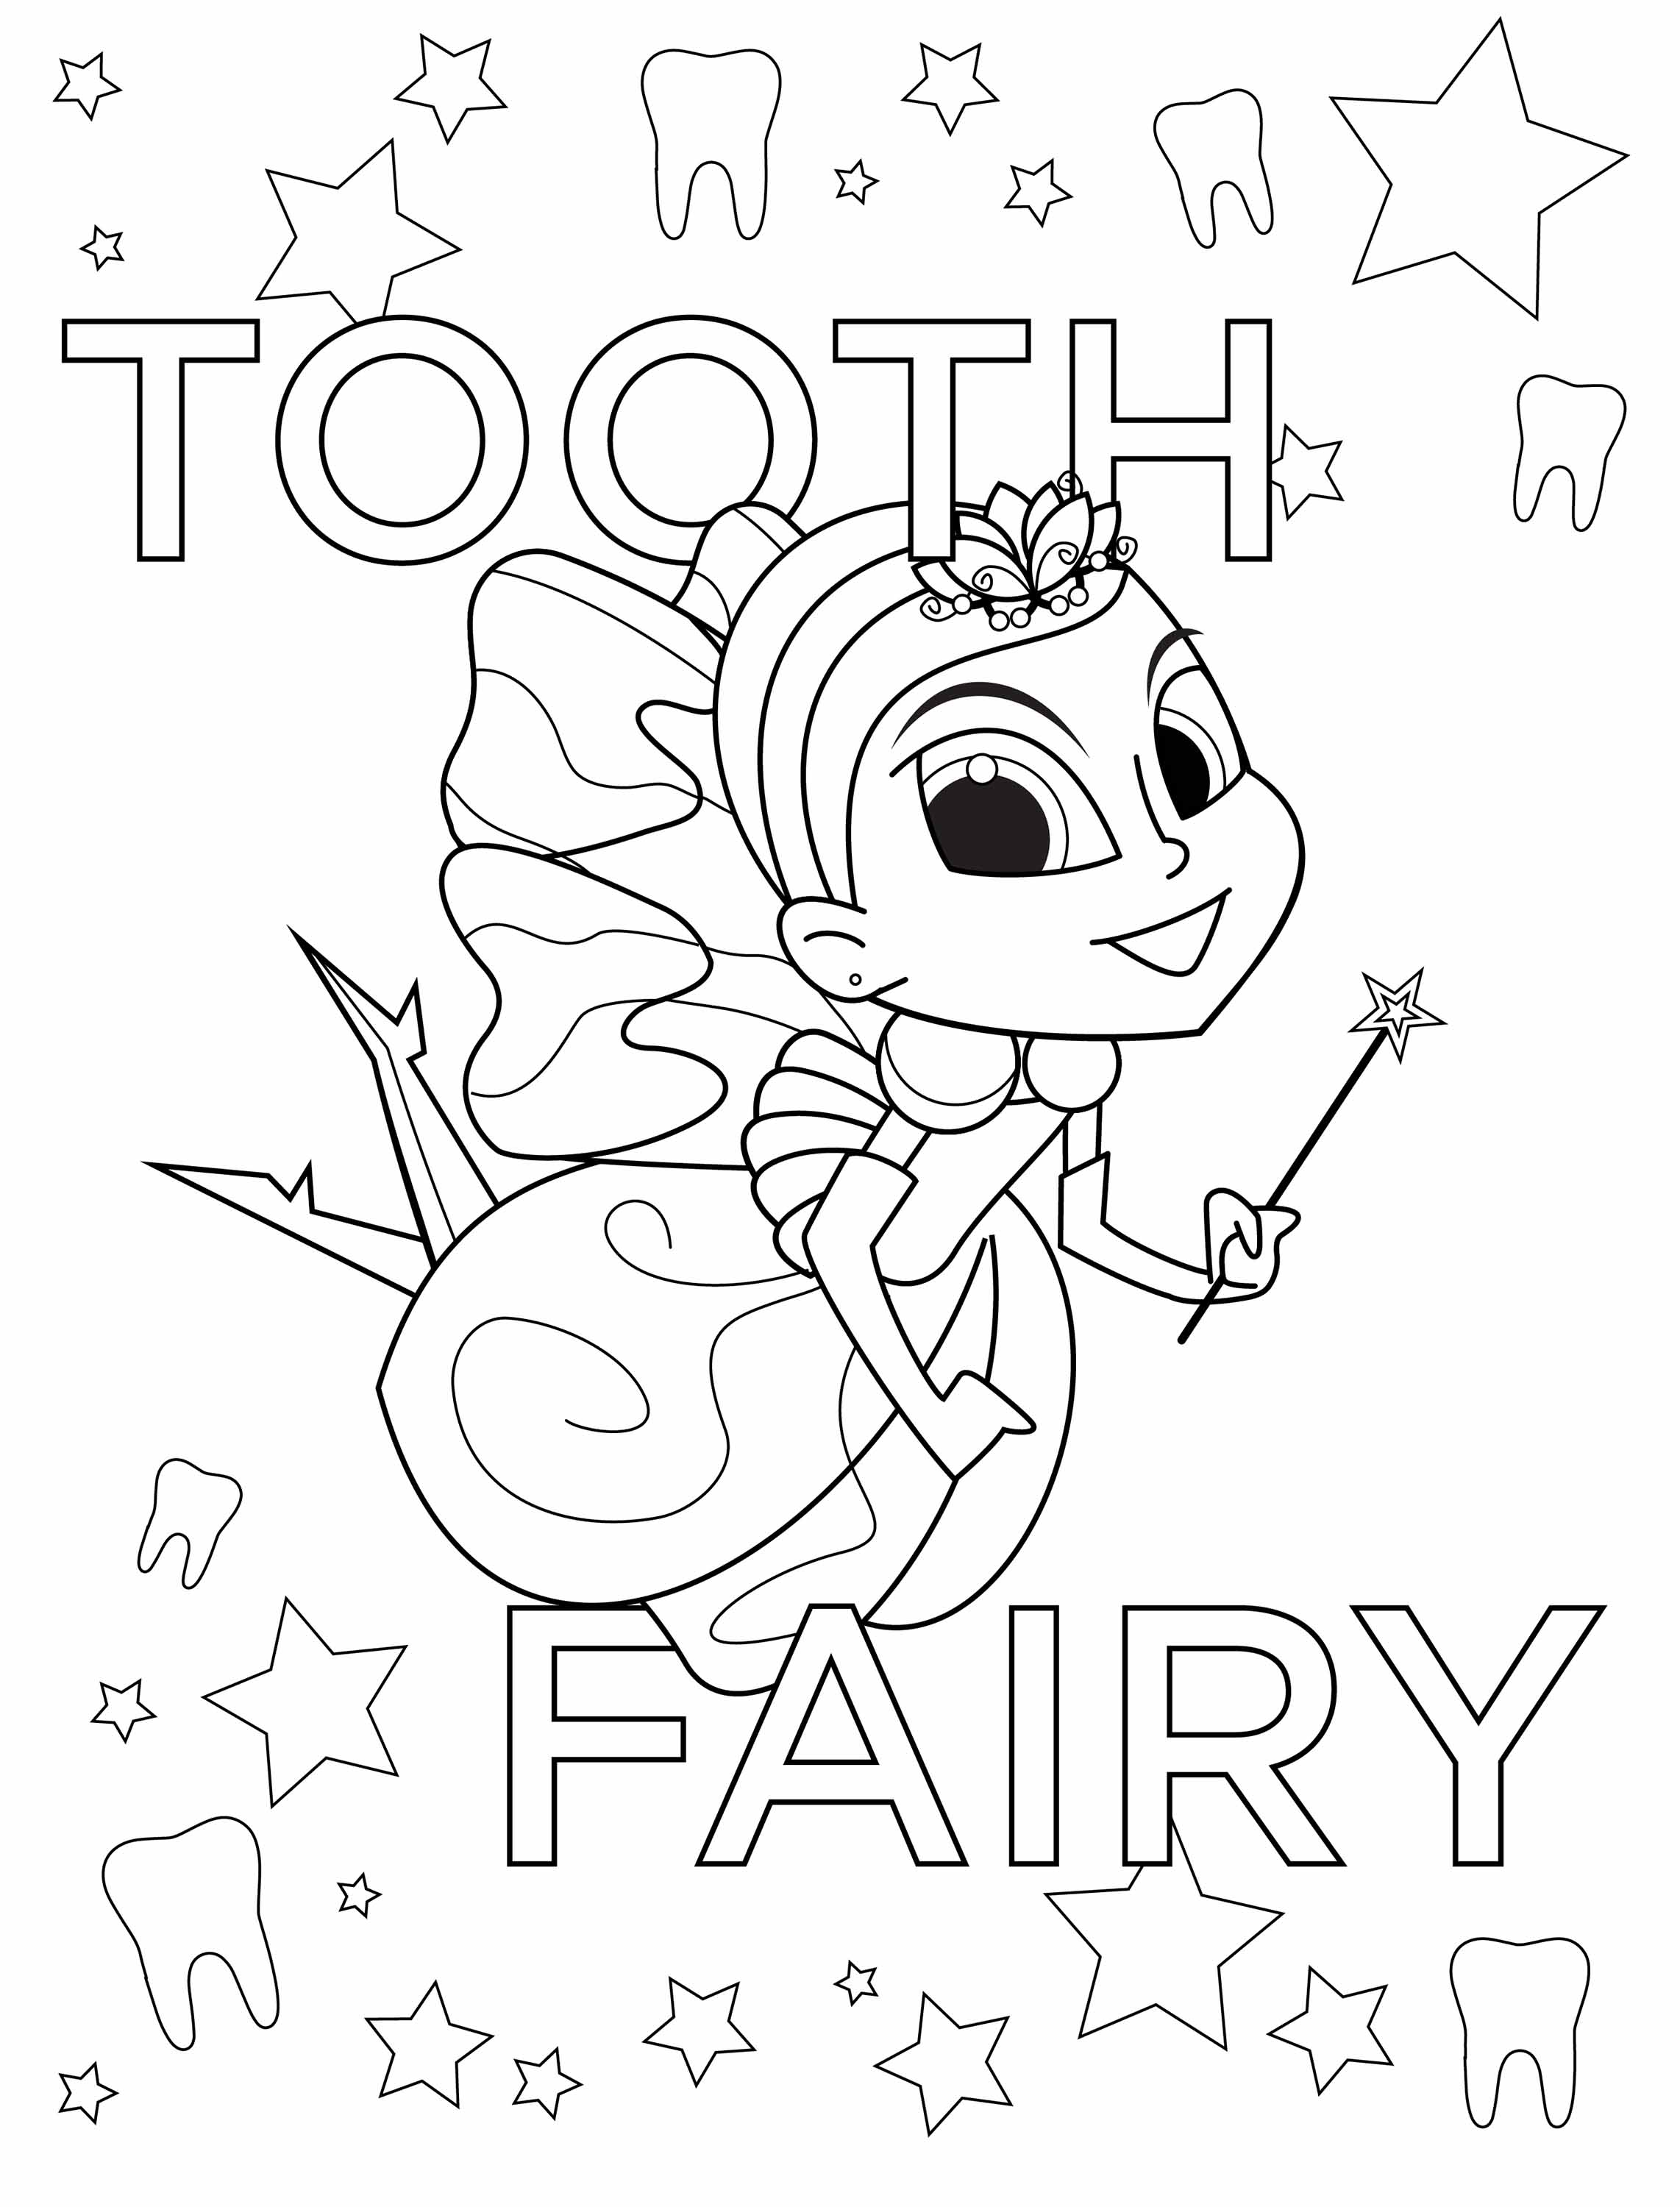 Outstanding Hermey Coloring Sheet 5 Kids Activity Sheets Collection Of No Fear Kids Zone Download